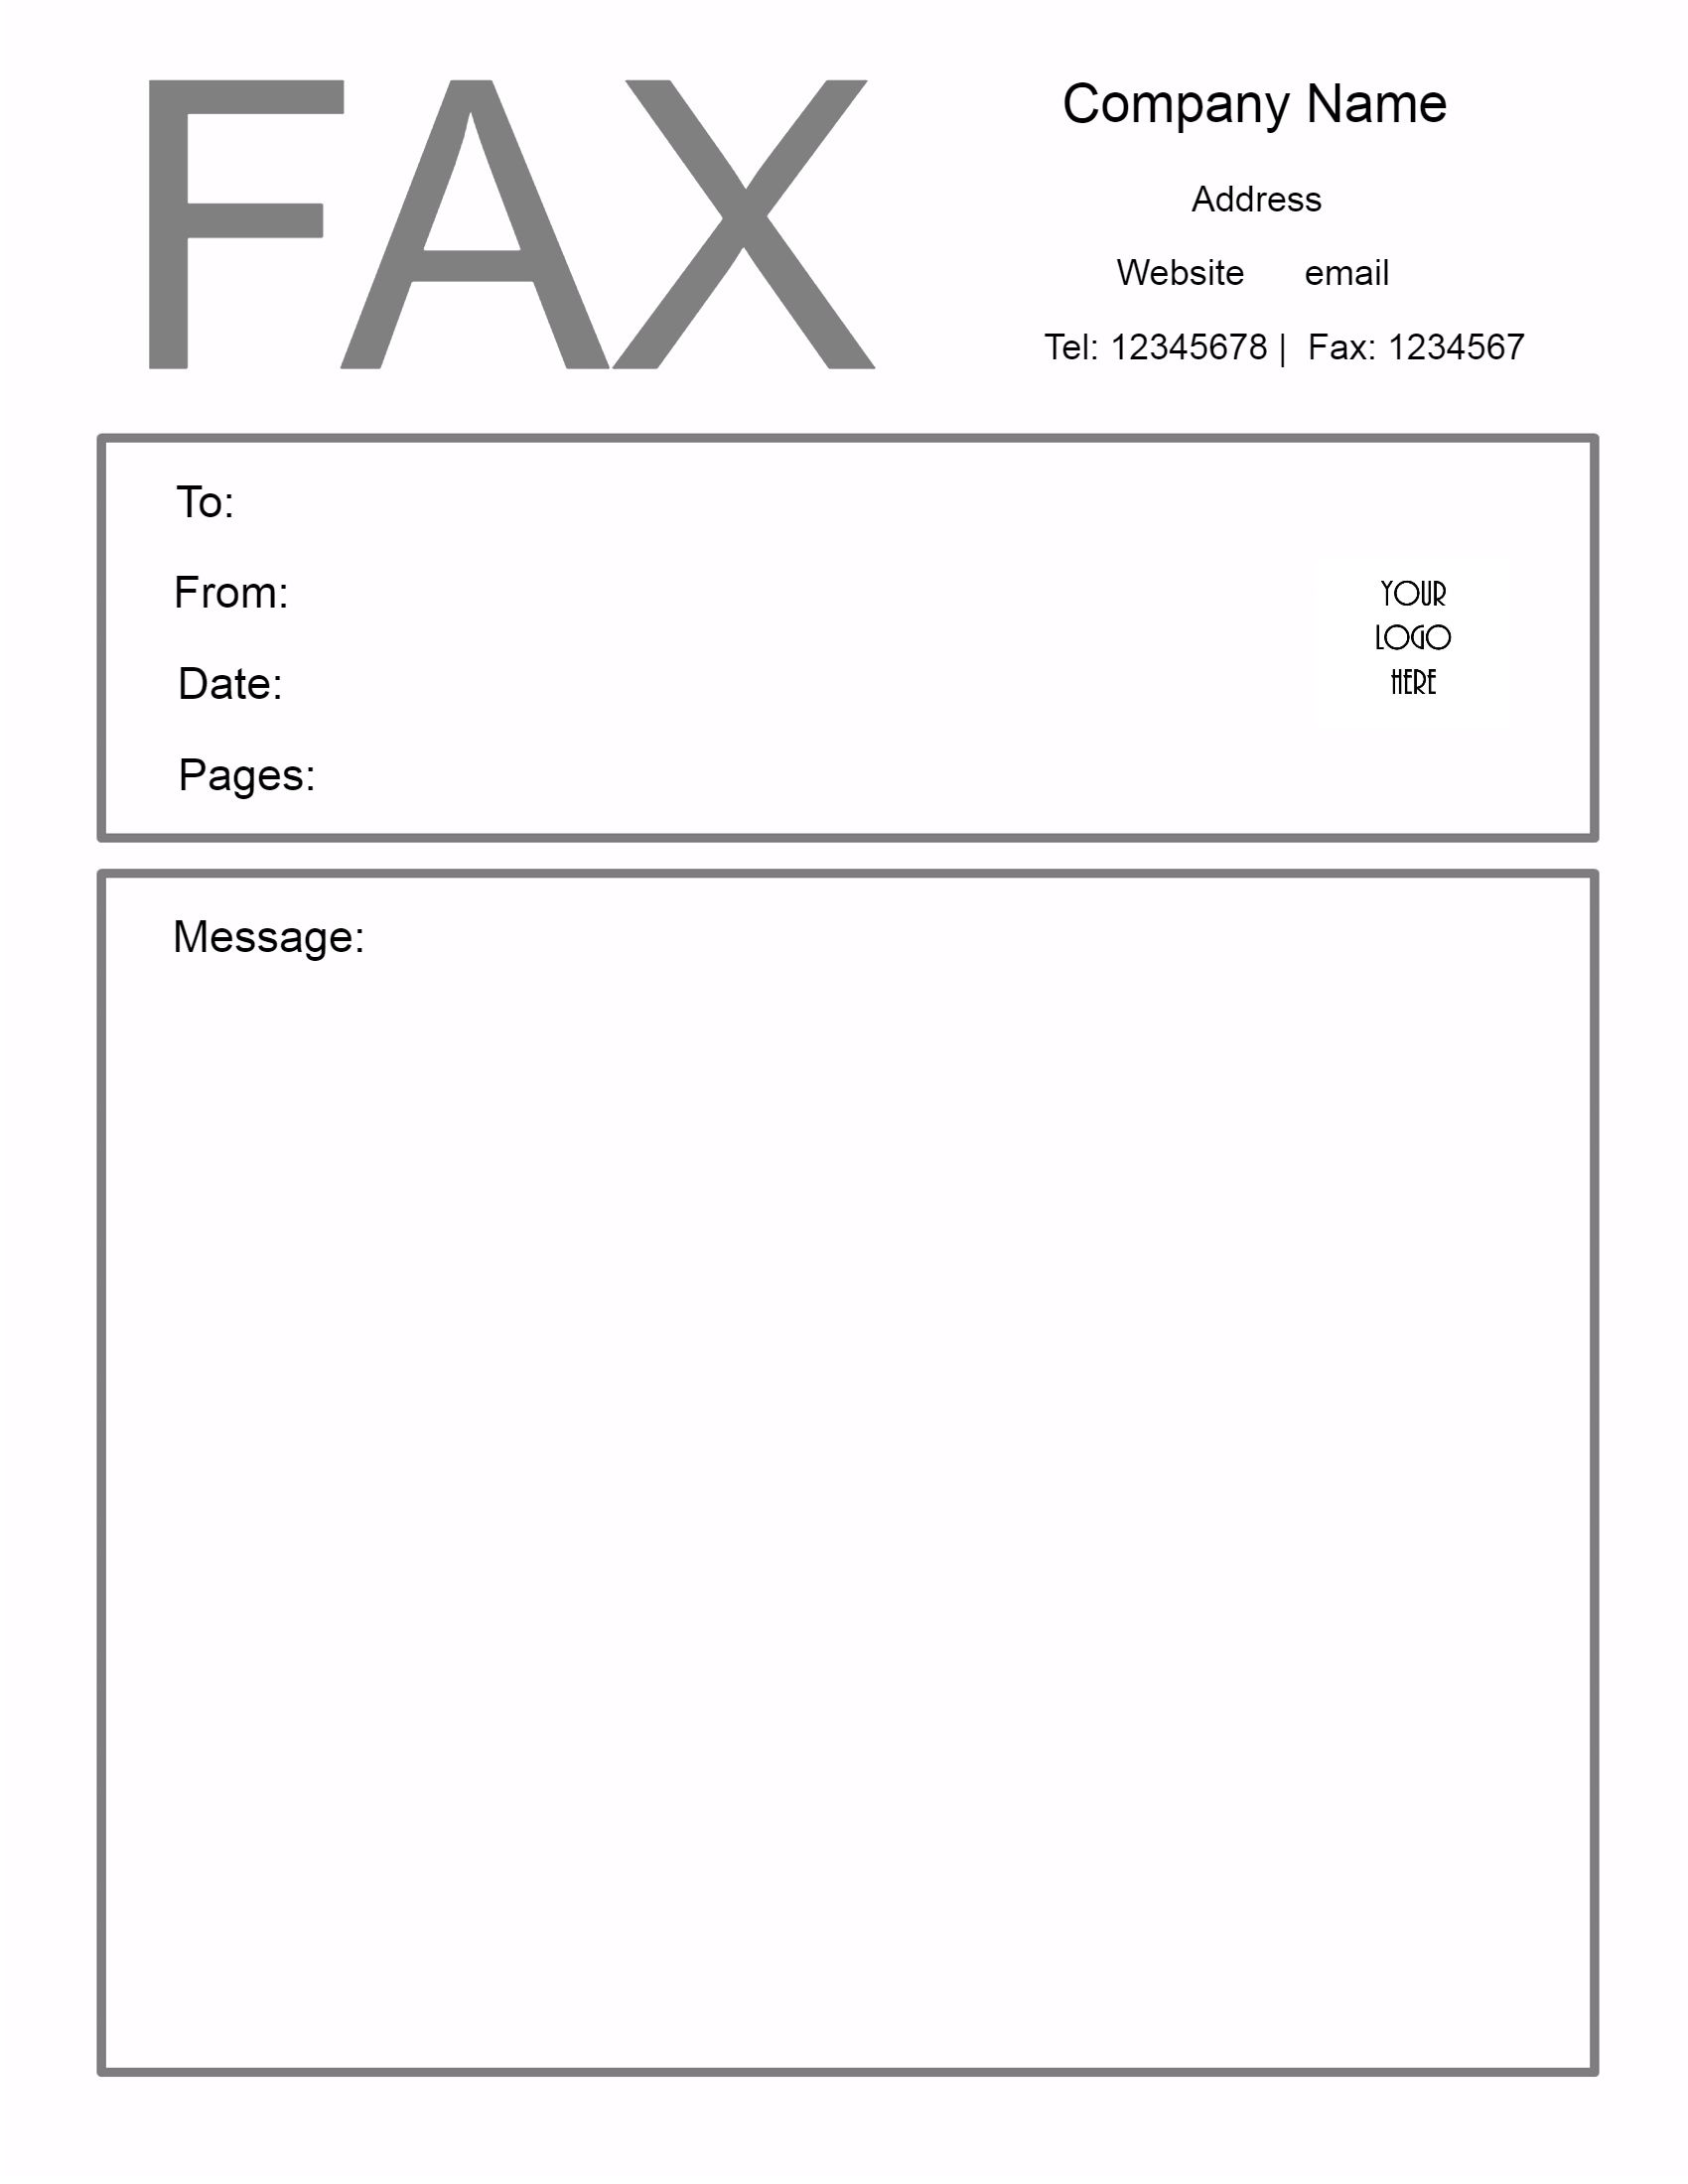 Fax Cover Sheet Template  Microsoft Word Fax Cover Sheet